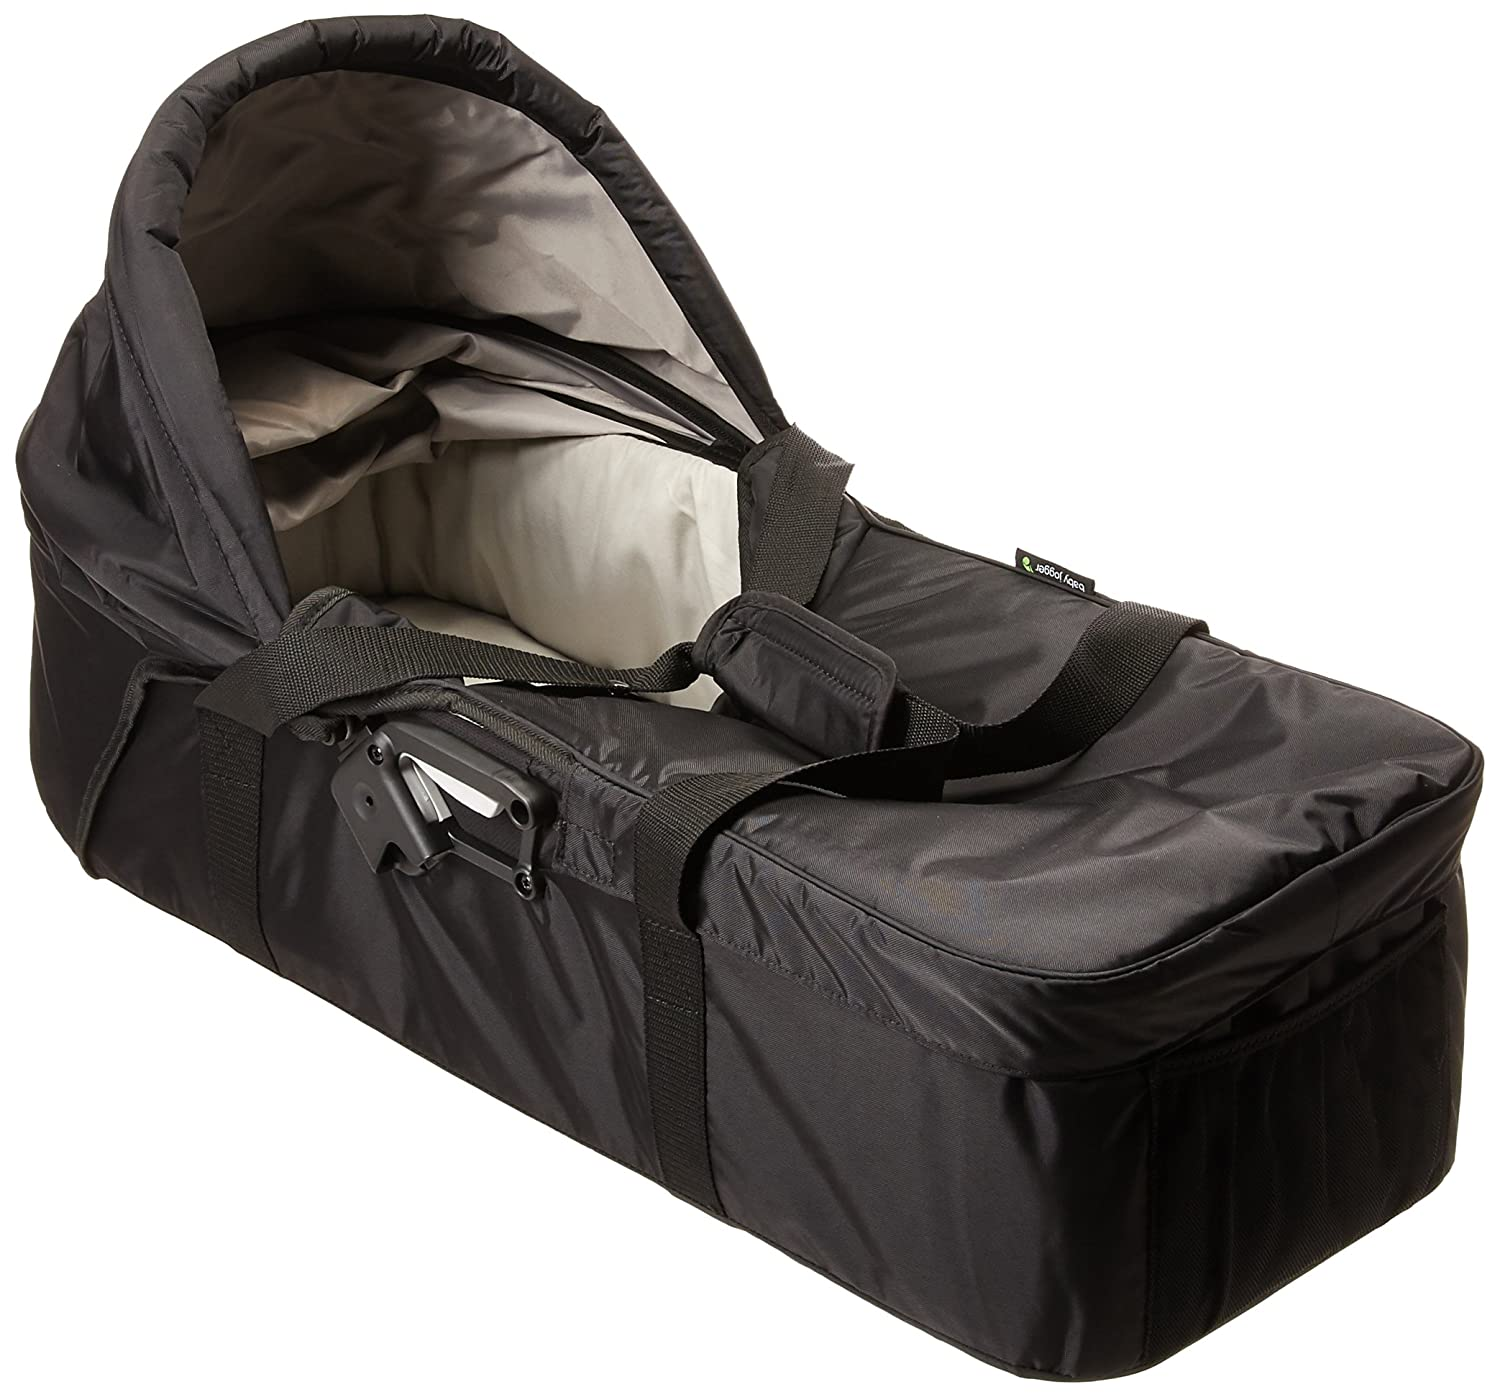 Baby Jogger Compact Pram MB Single/Double, Black/Gray Graco 11-26-008